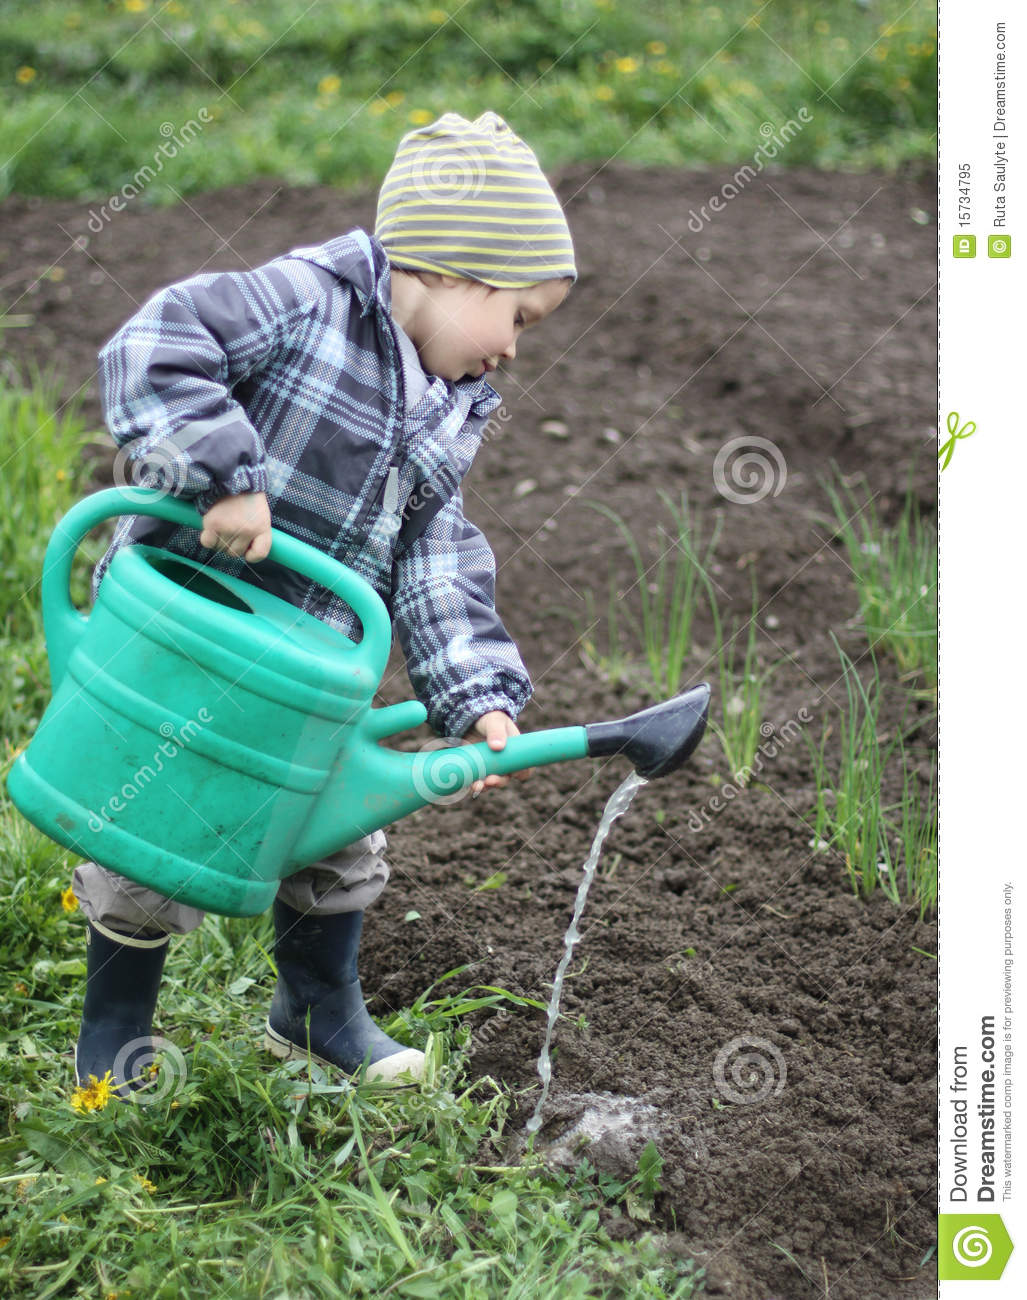 Watering soil royalty free stock photo image 15734795 for Soil young s modulus